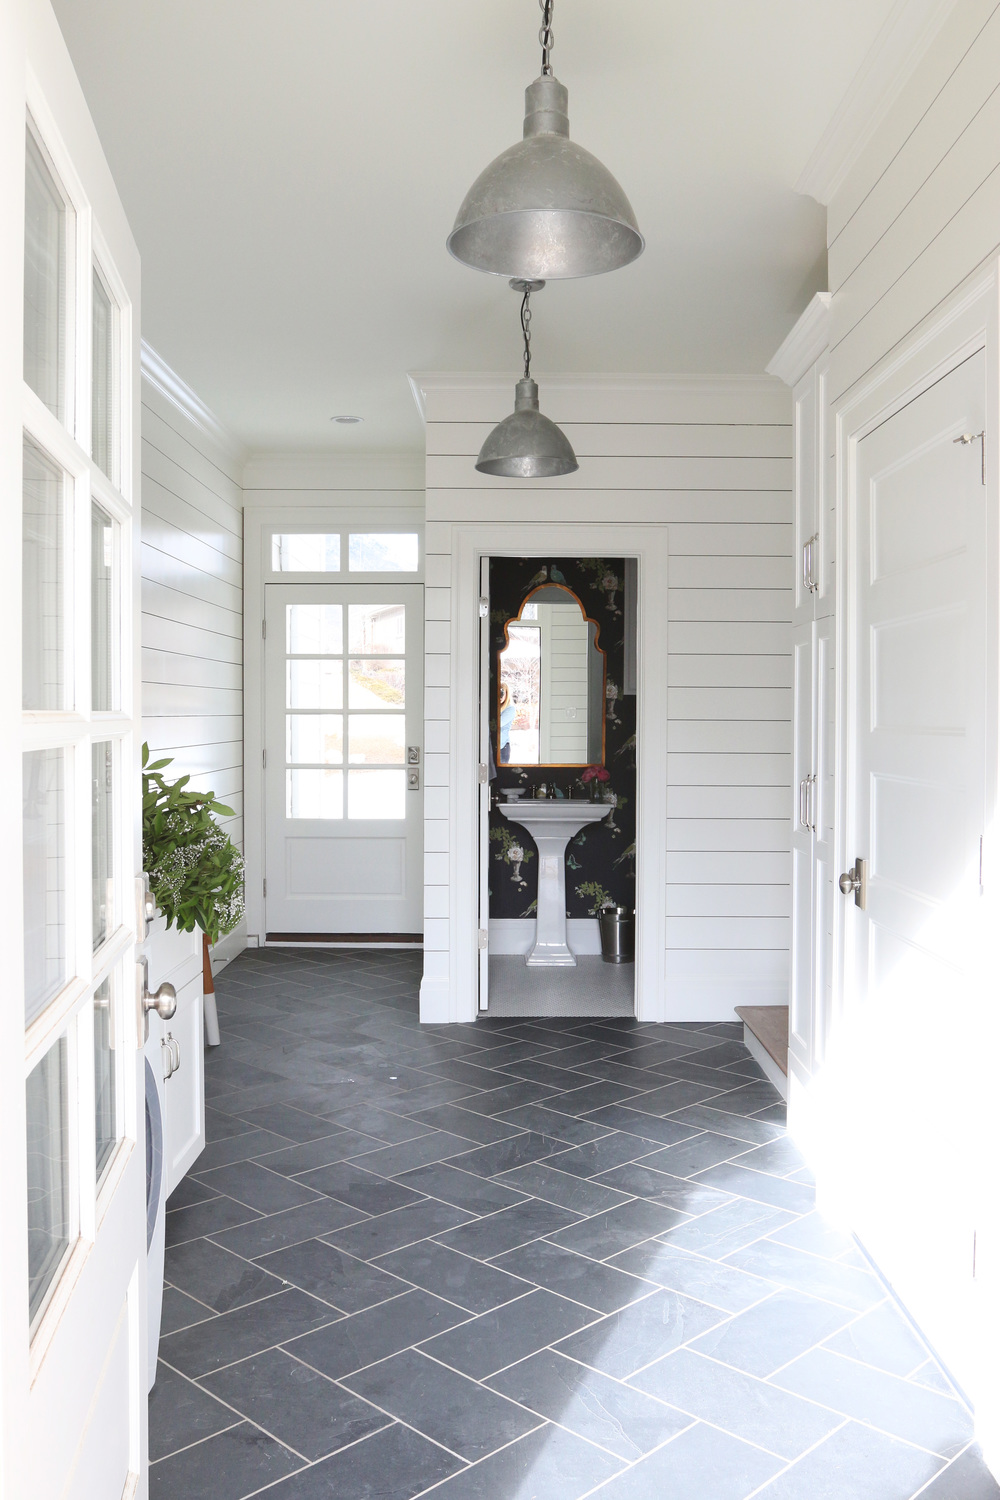 benjamin moore color of the year simply white studio mcgee